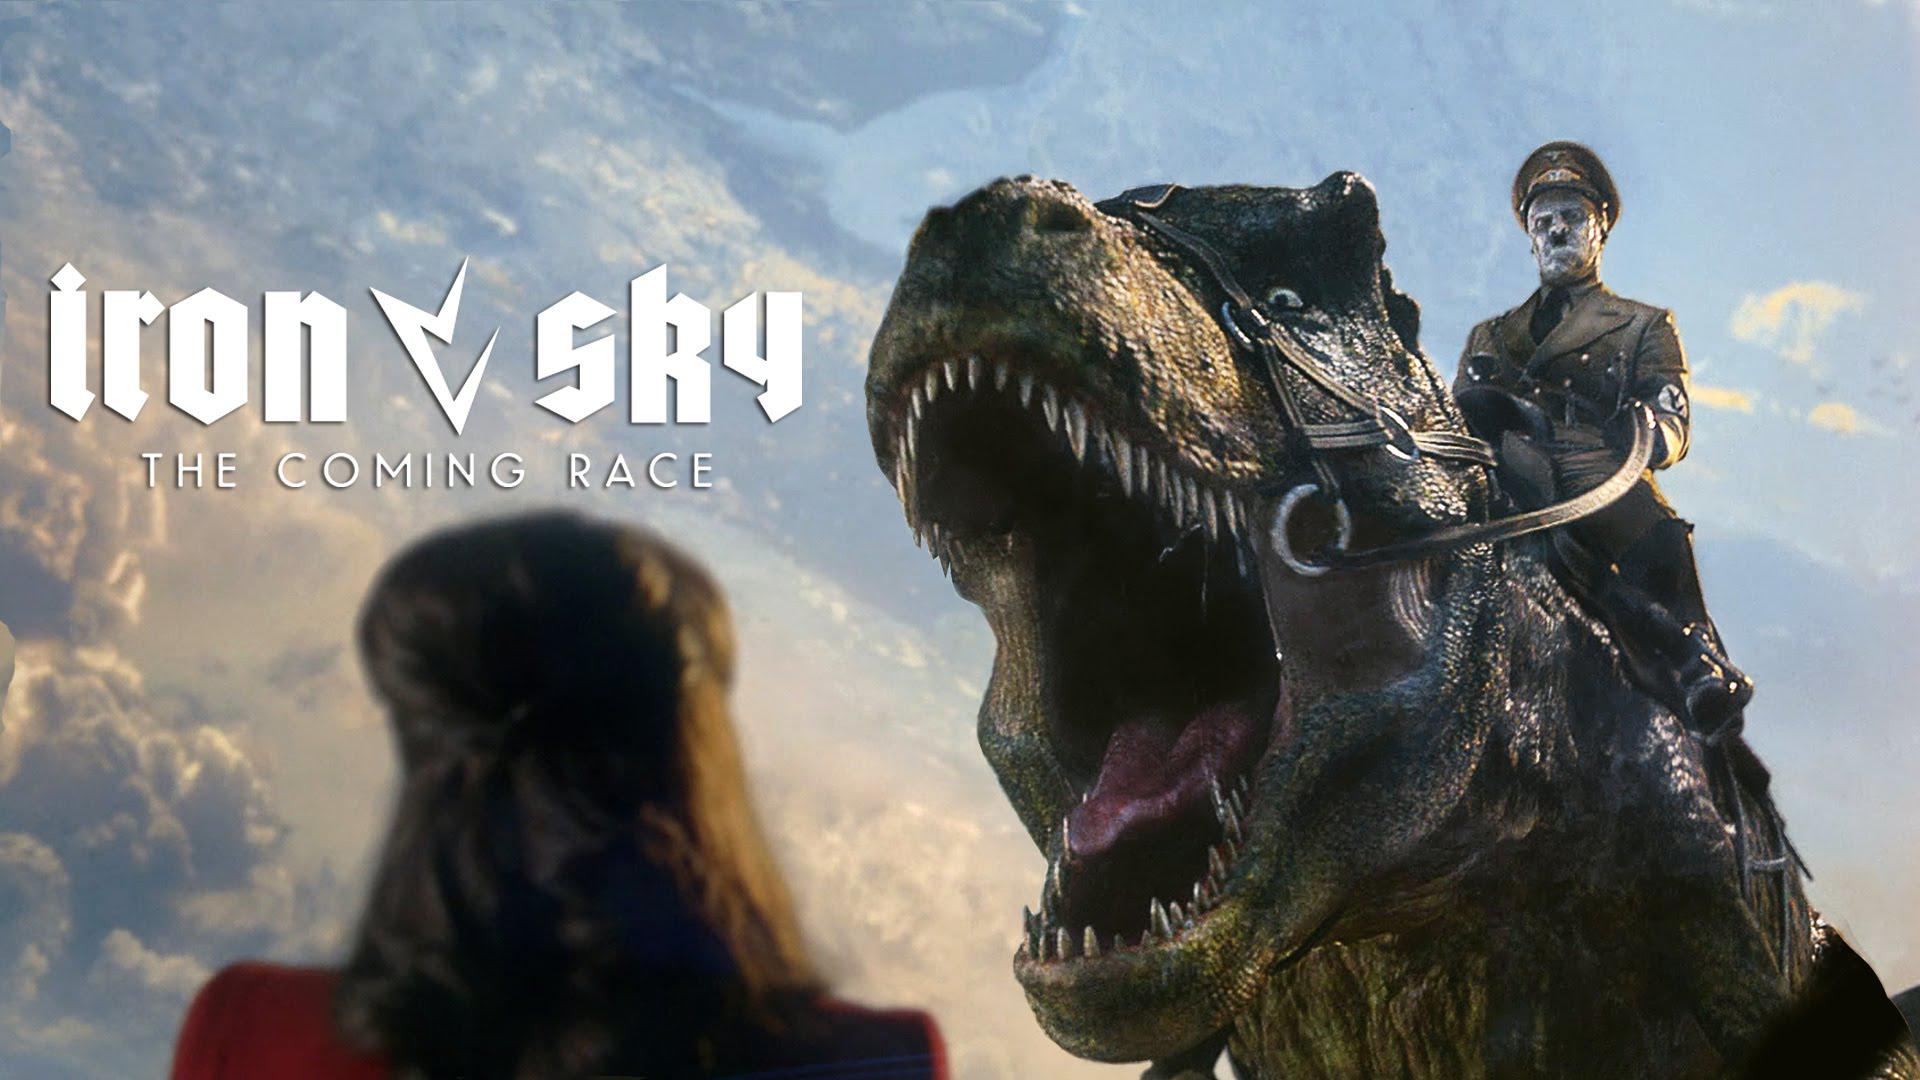 Iron Sky 2 - the coming race - T-Rex Hitler